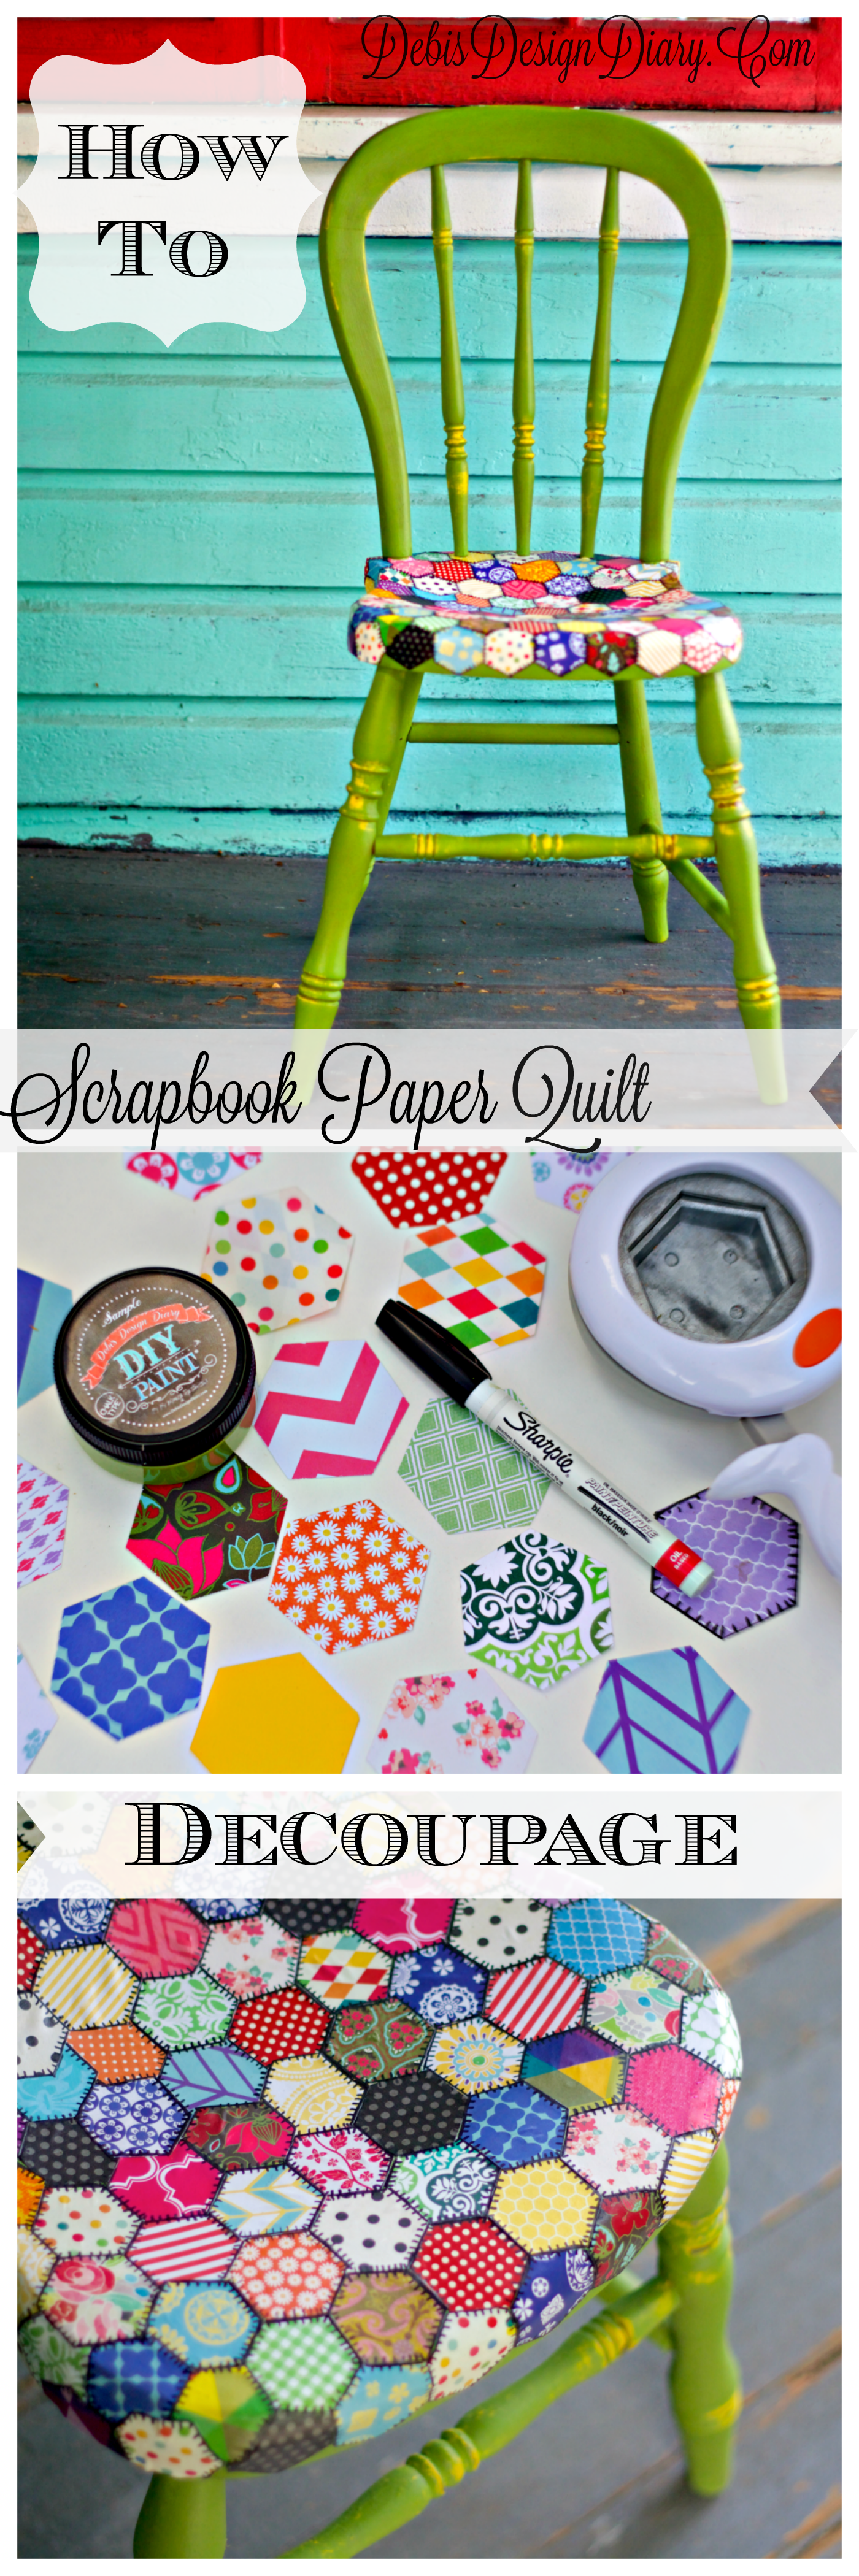 Scrapbook paper art ideas - How To Decoupage Furniture In A A Quilt Pattern With Scrapbook Paper Also This Chair